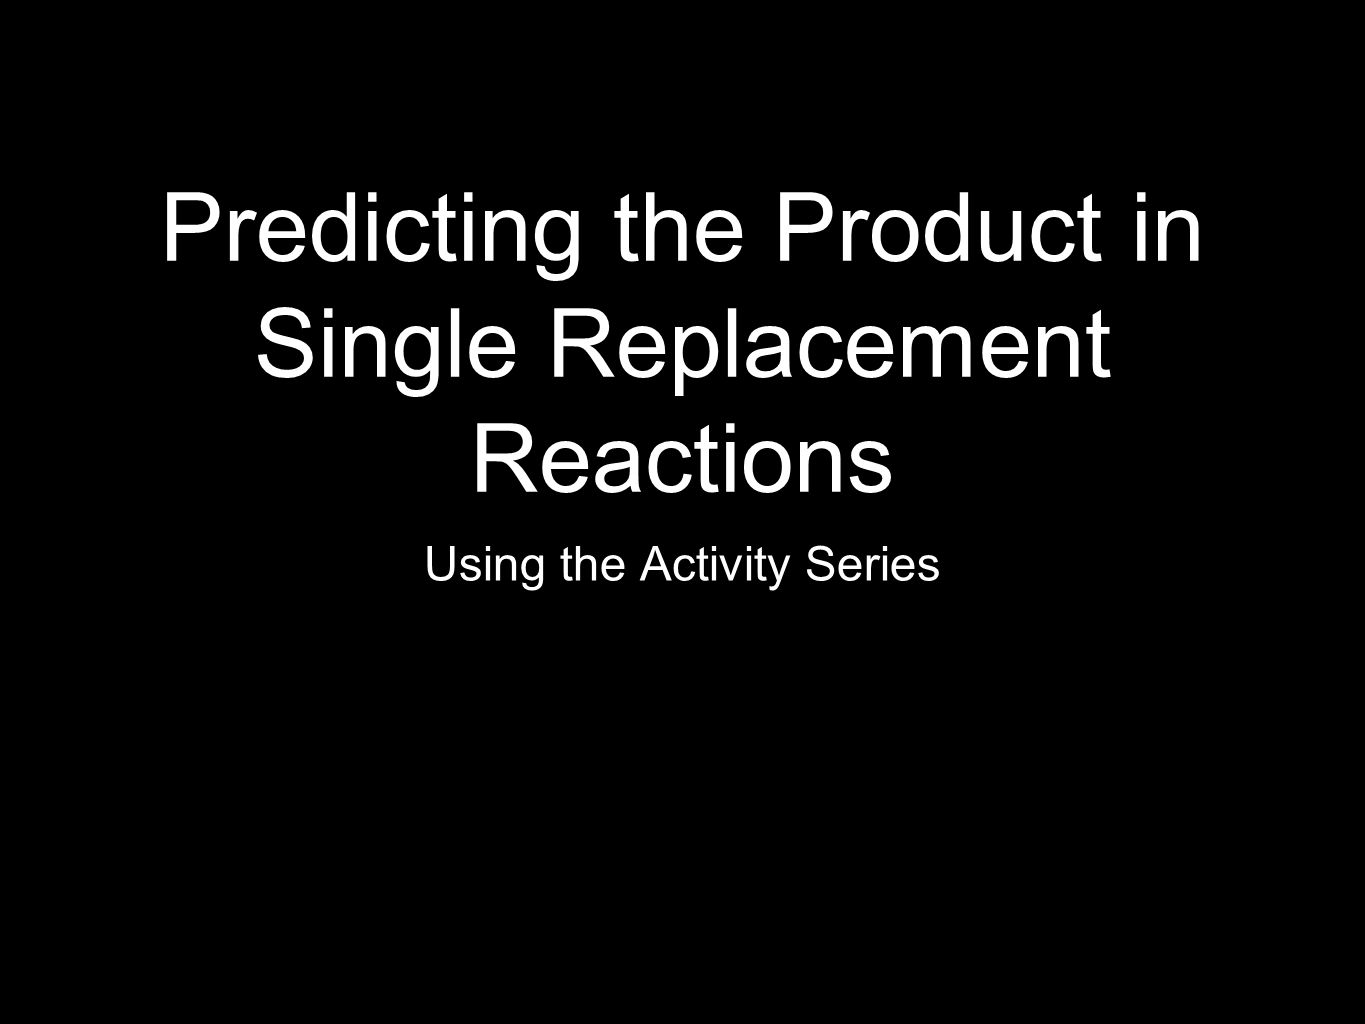 Predicting the Product in Single Replacement Reactions Using the Activity Series